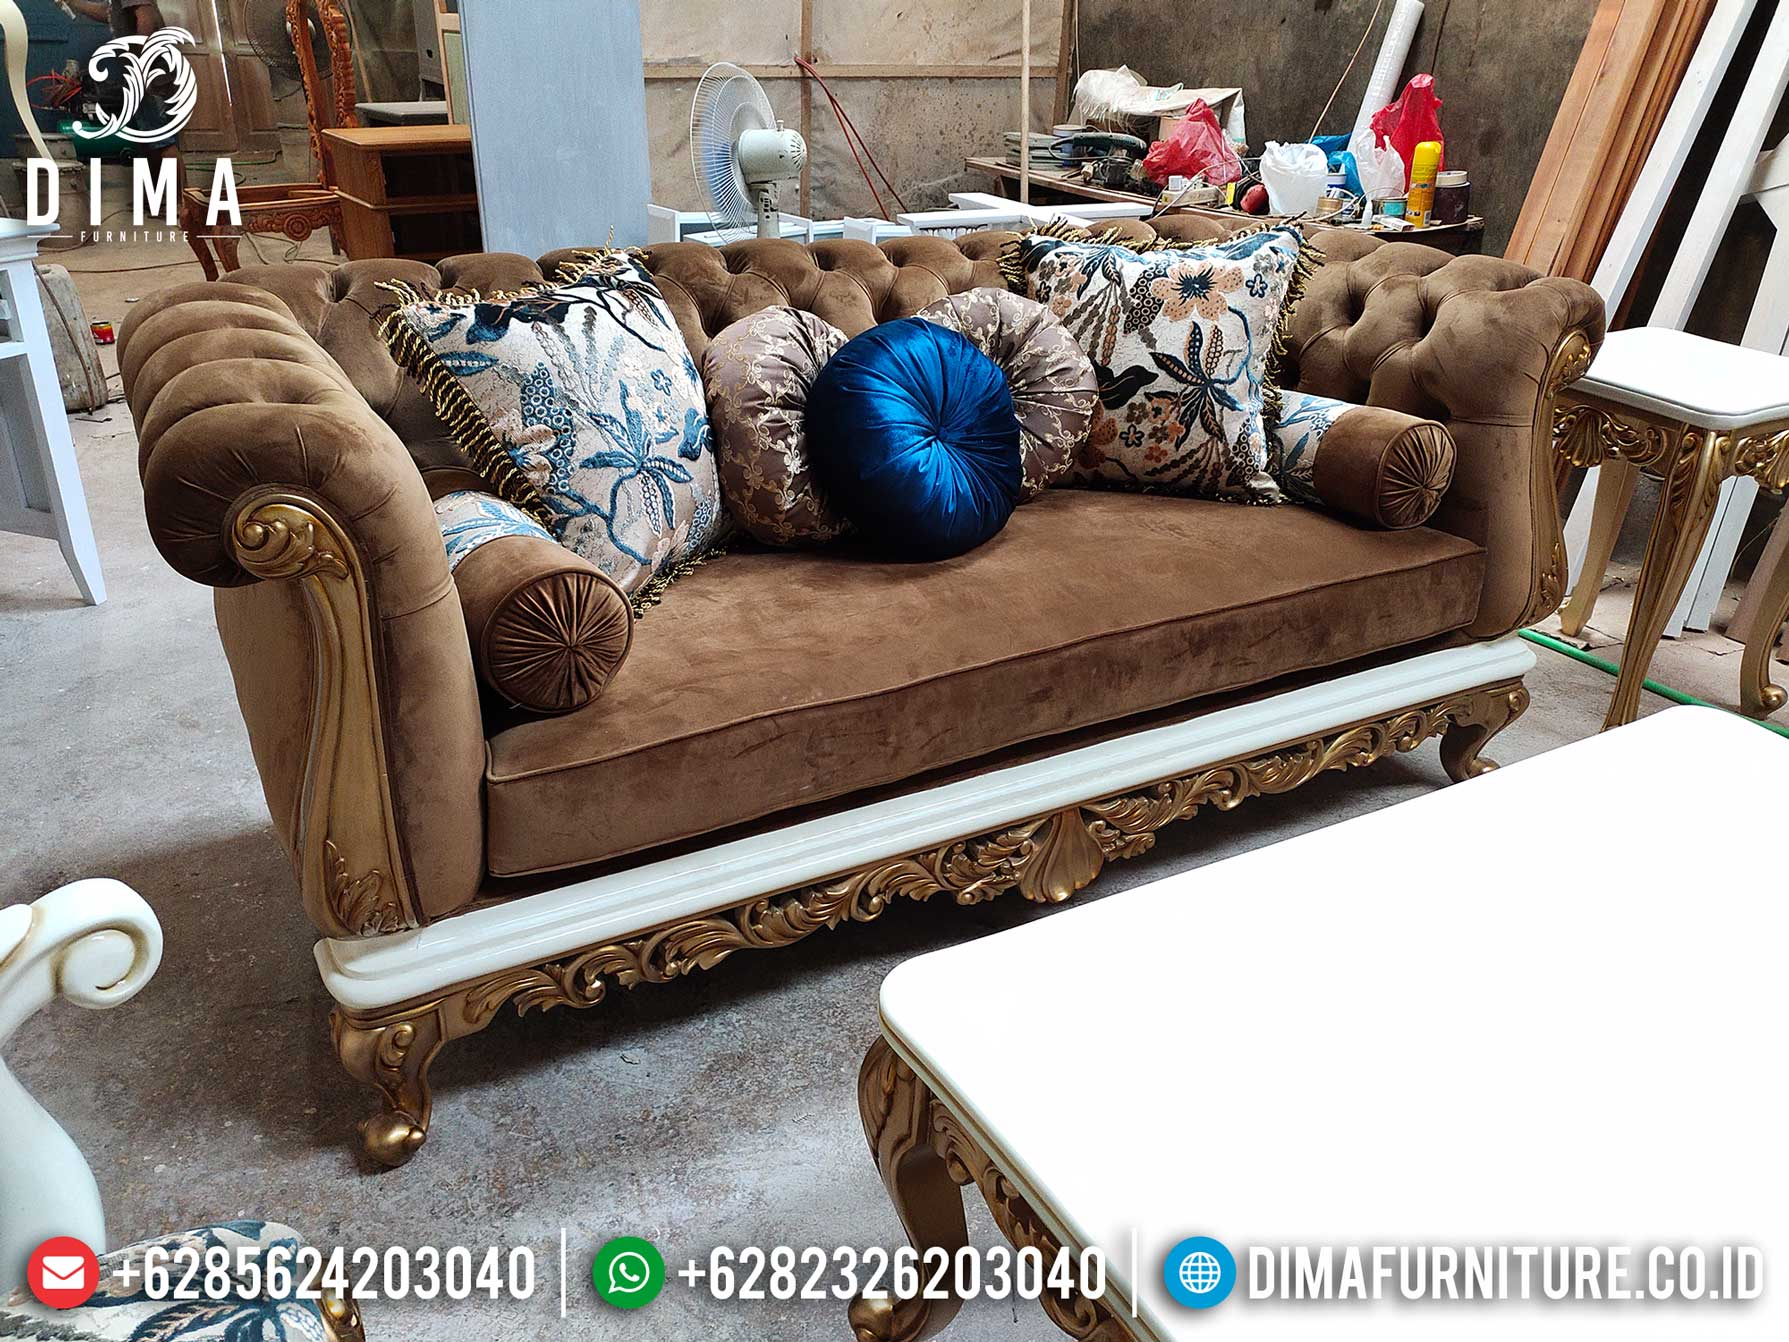 Great Sofa Tamu Mewah 3 Seater Luxury Carving Furniture Jepara Terbaru TTJ-1276